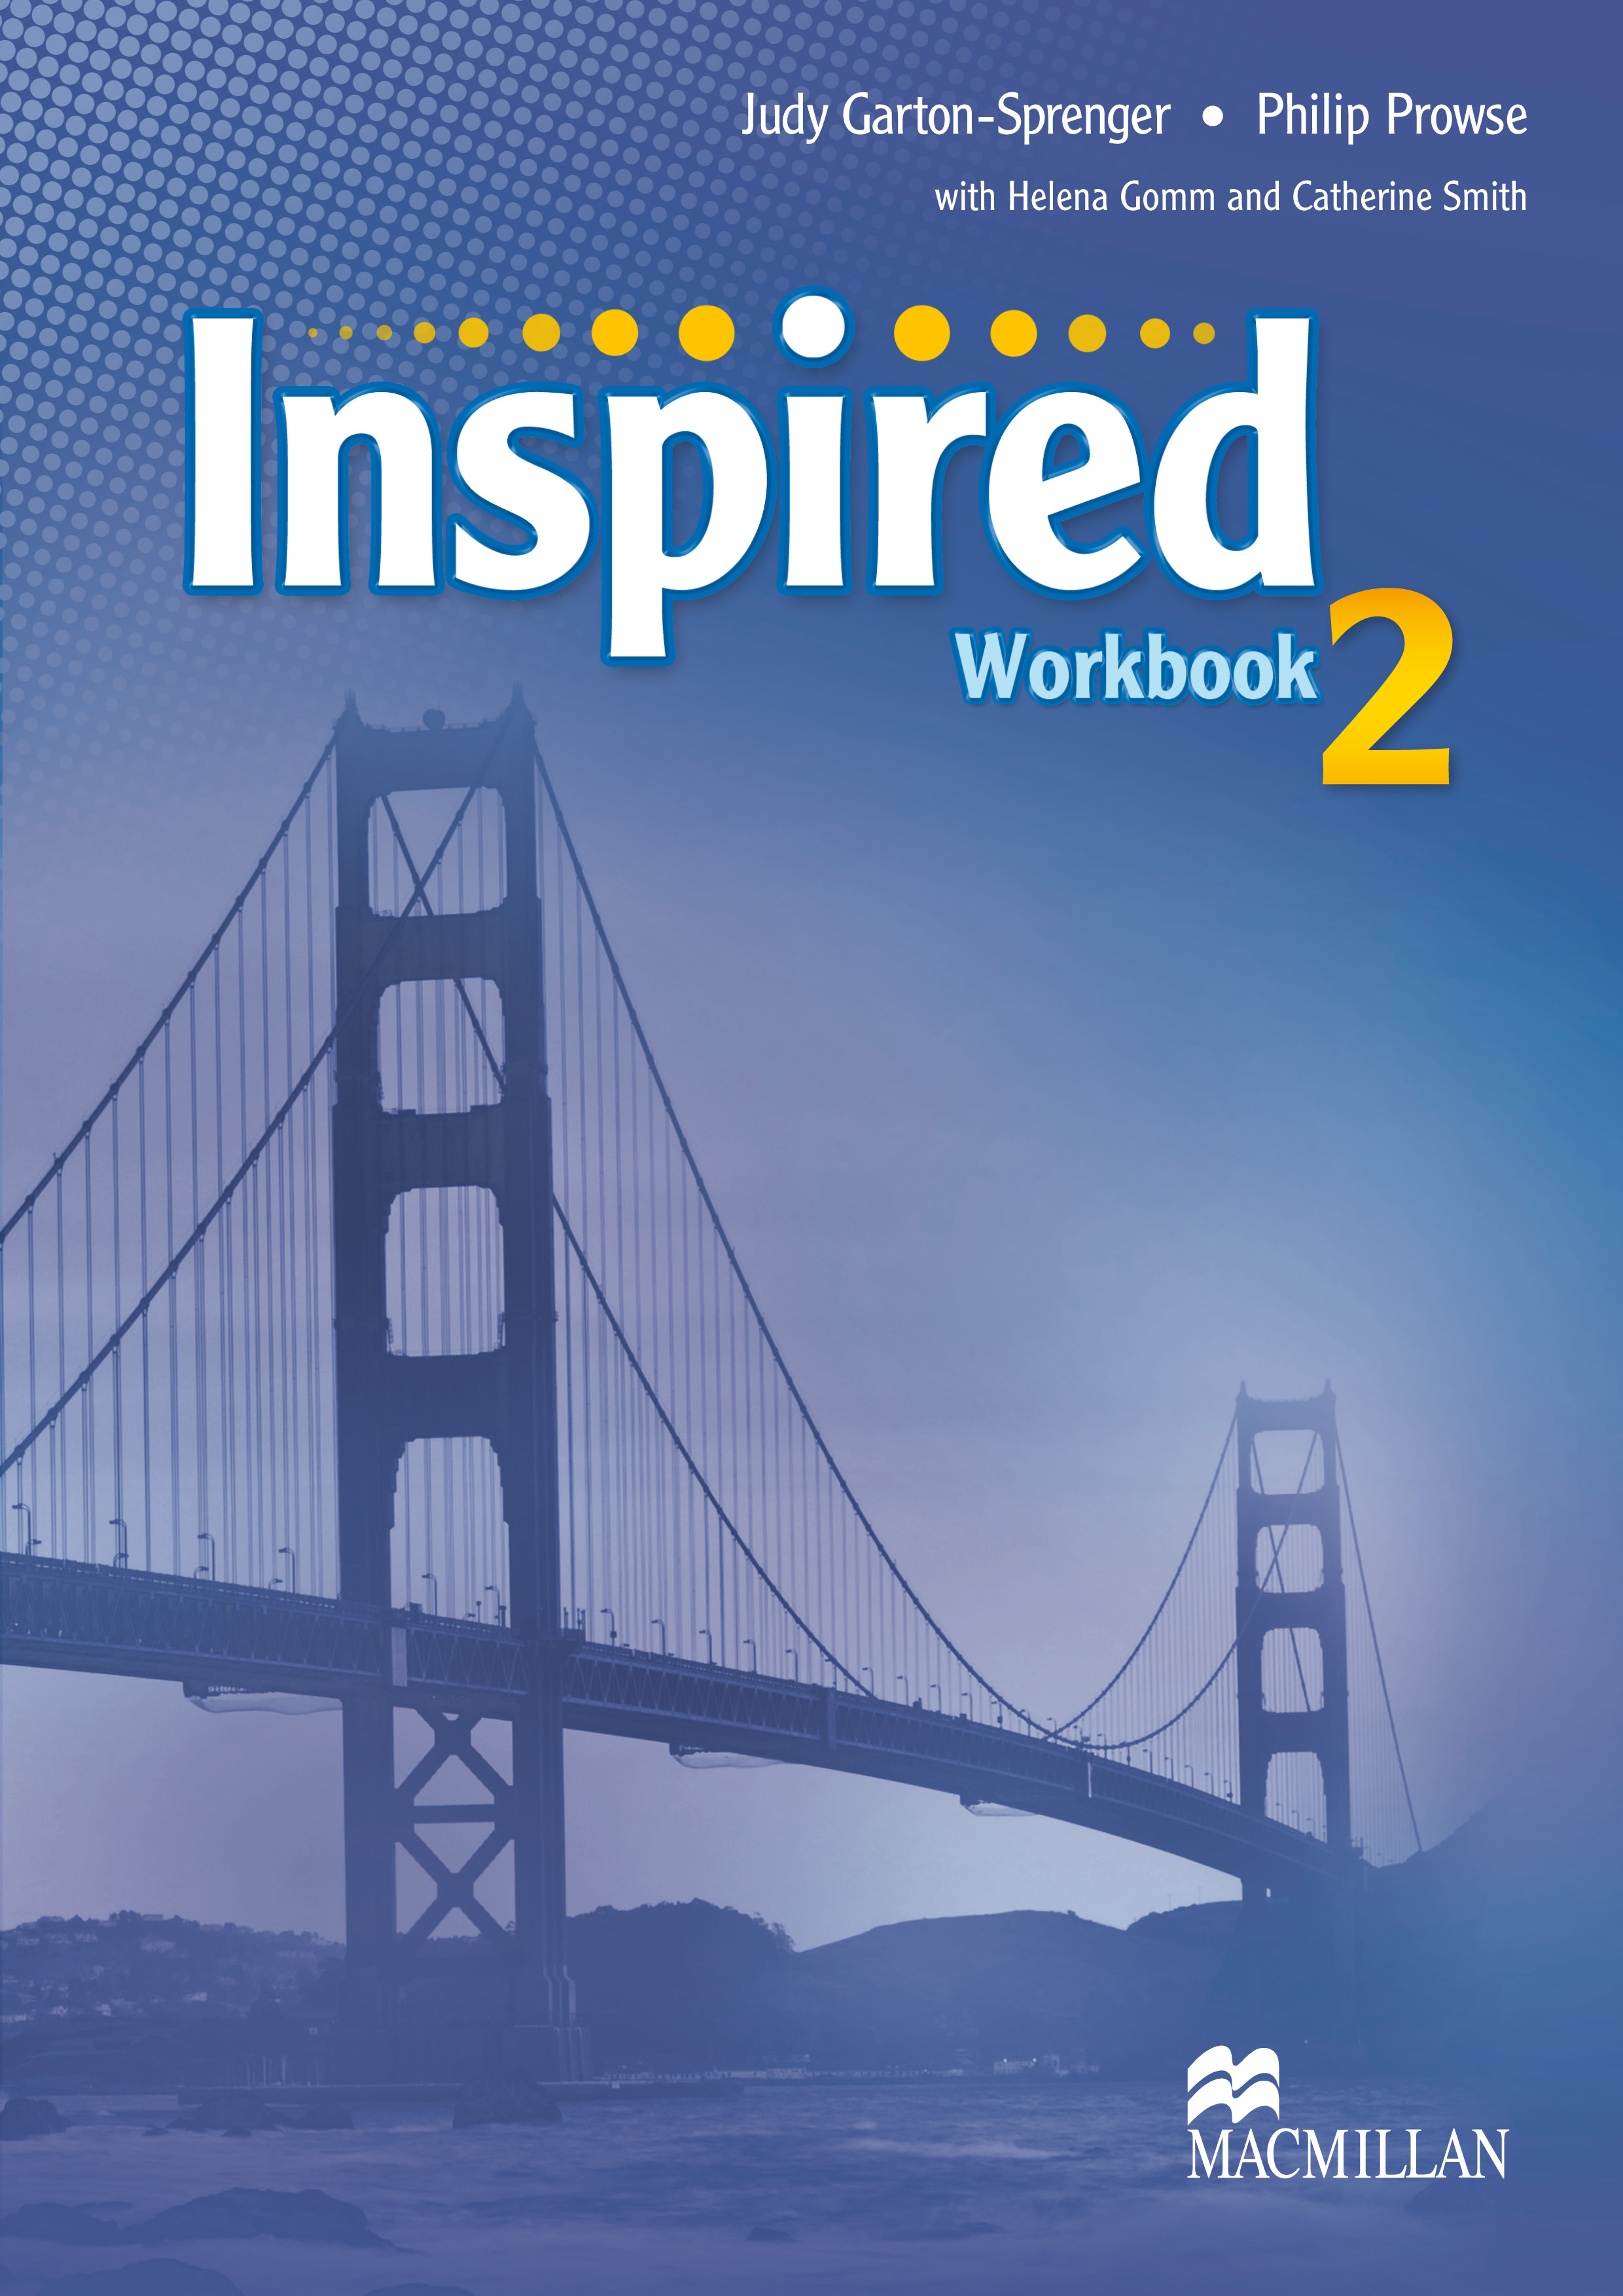 Inspired 2 Workbook